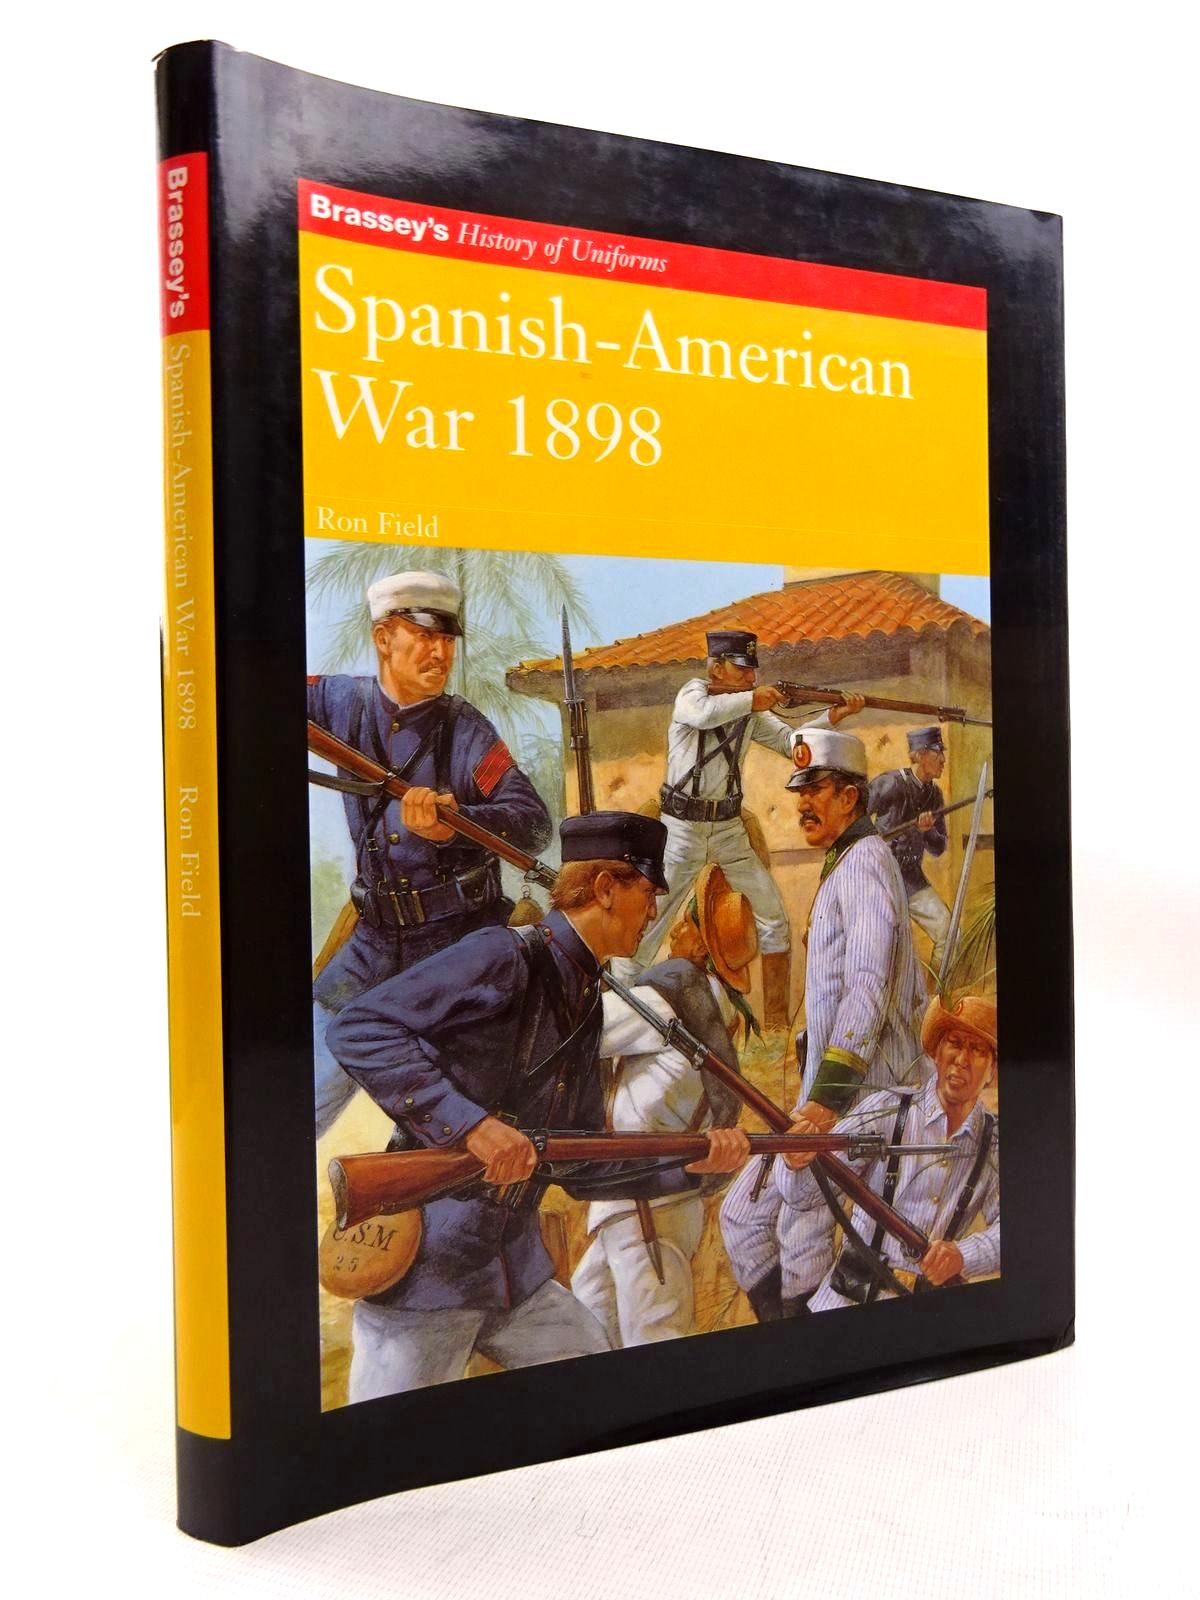 Photo of SPANISH-AMERICAN WAR 1898 written by Field, Ron illustrated by Hook, Richard published by Brassey's (STOCK CODE: 1816317)  for sale by Stella & Rose's Books